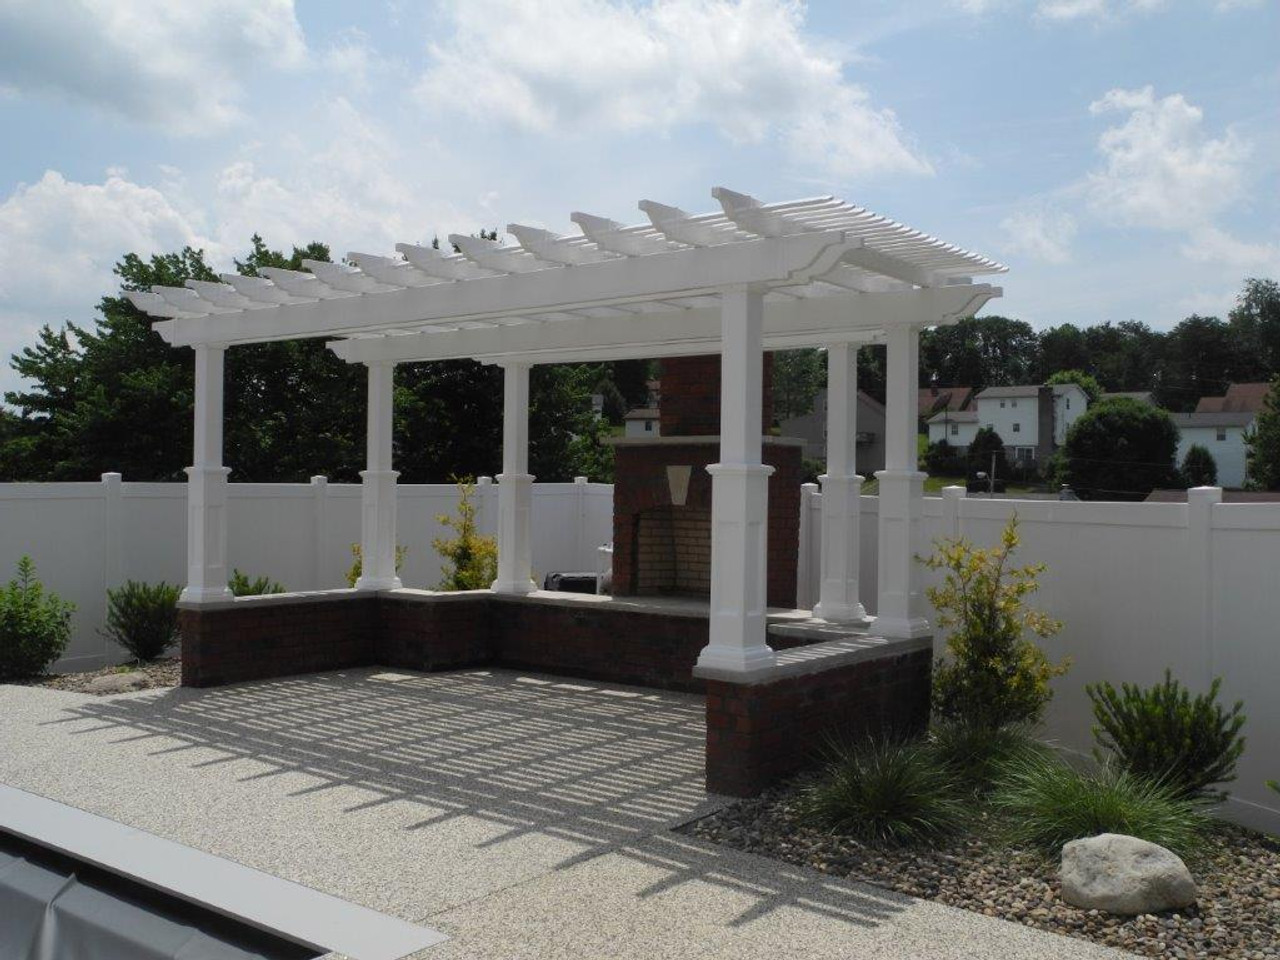 Custom Vinyl Pergola with 36in tall post bases, Shademax